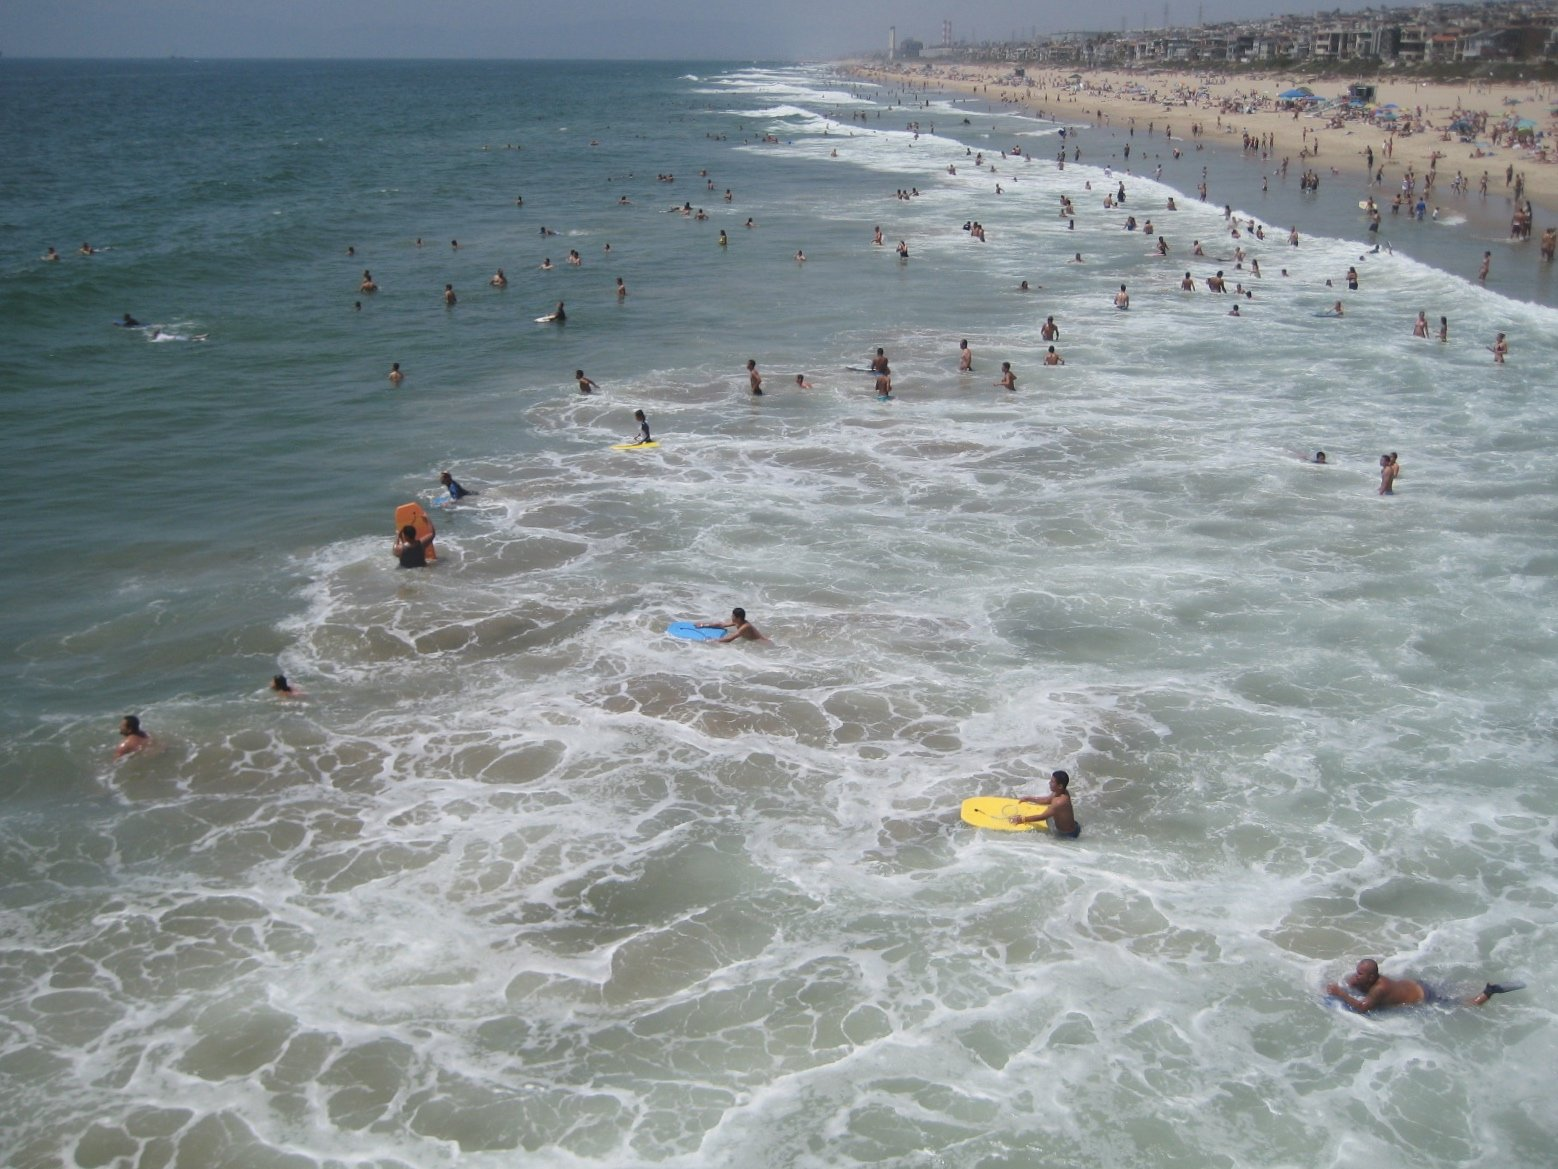 People Wading into Ocean at Beach